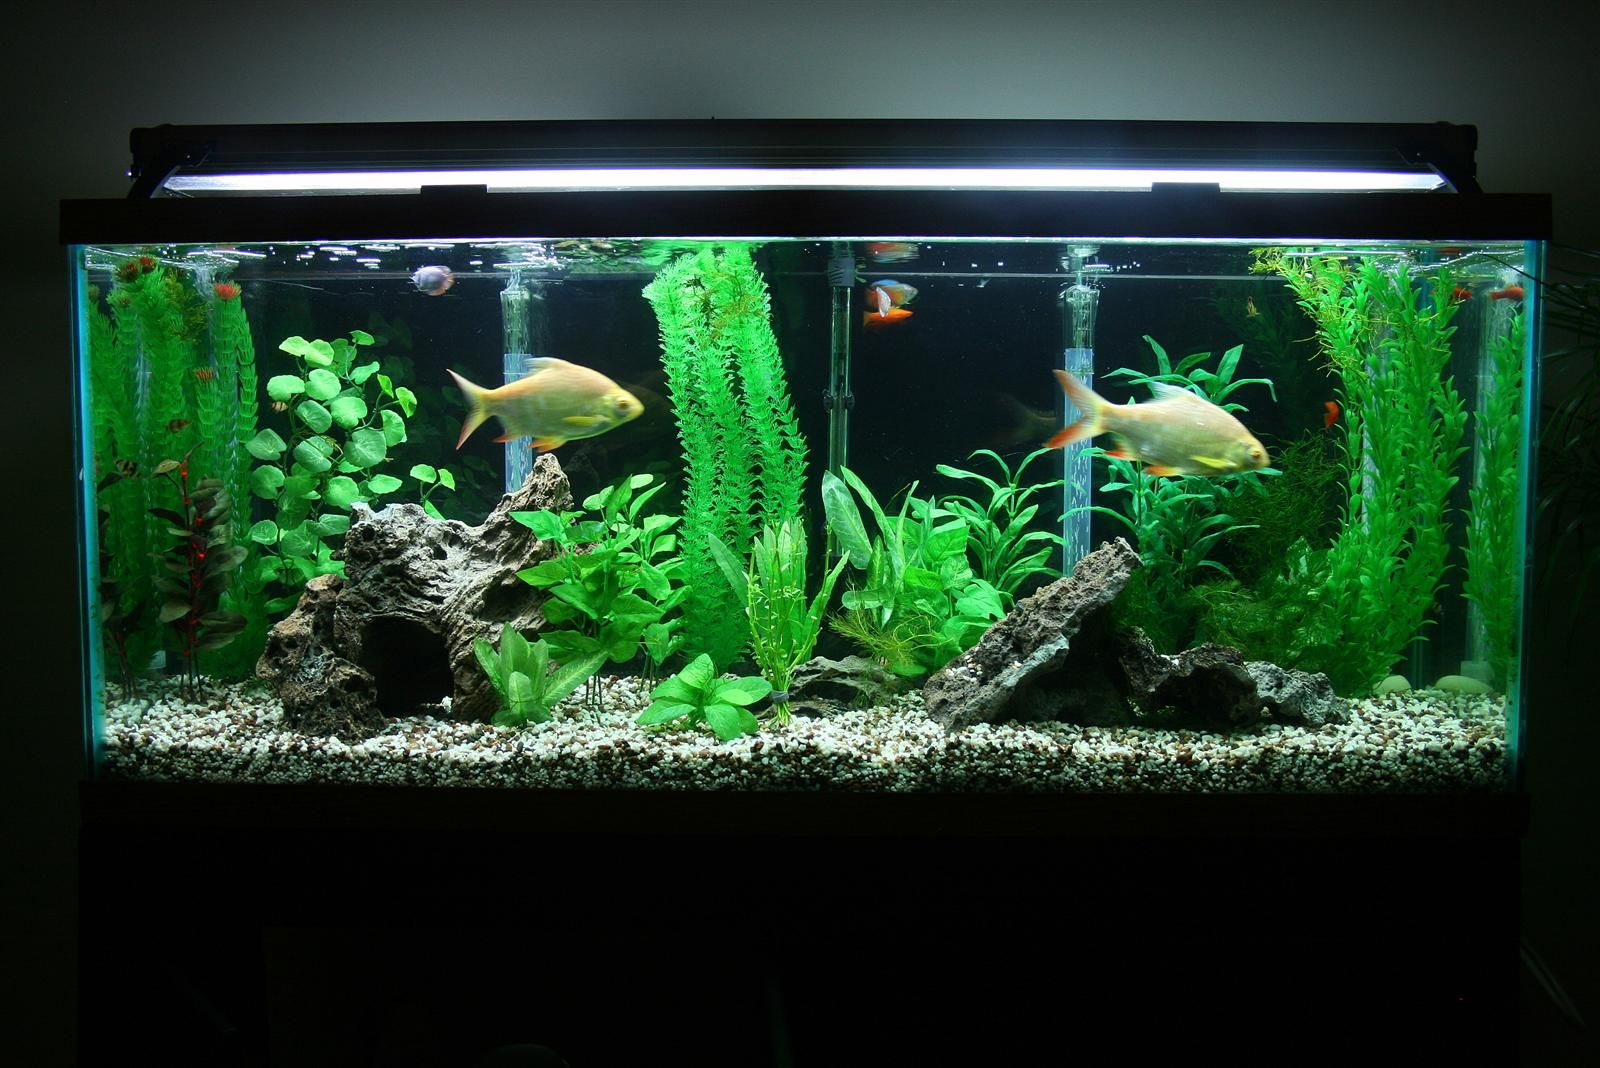 20 gallon fish tank 88 aquarium internal filter 3 in 1 for How many fish in a 20 gallon tank